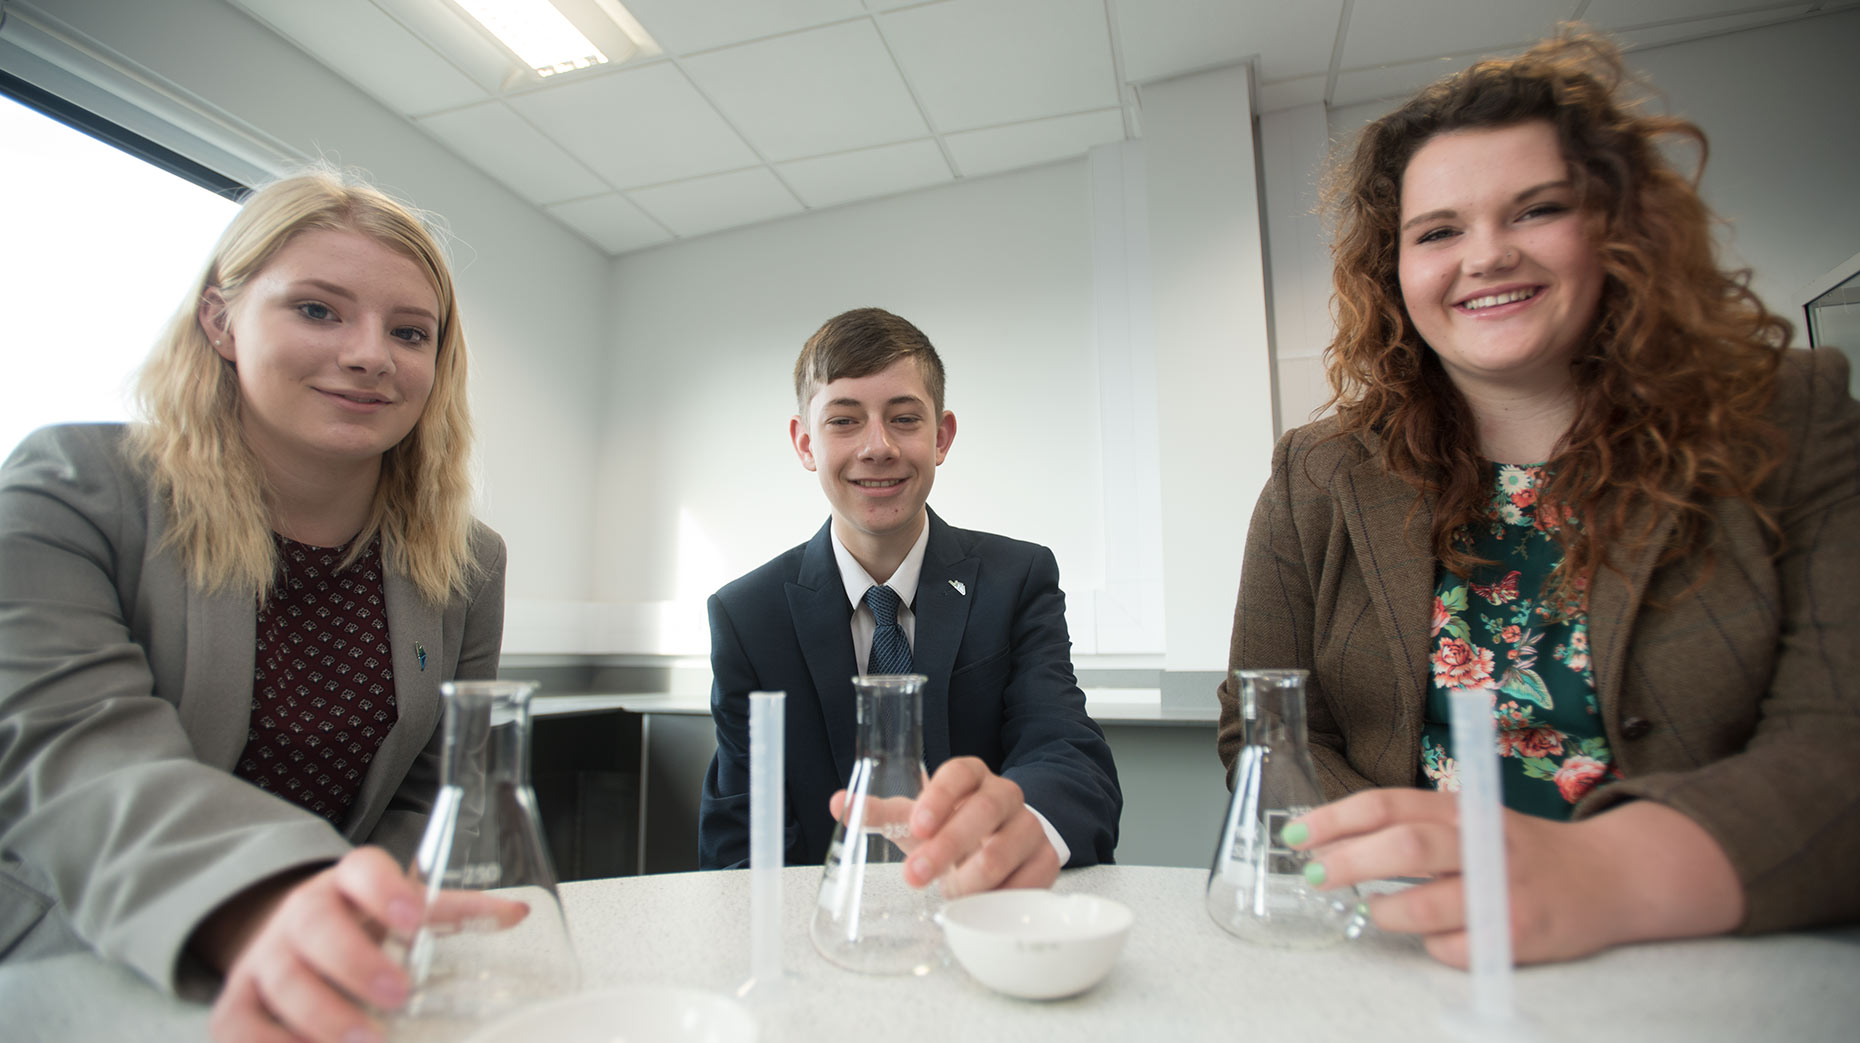 Hannah Kloed, Michel Homes and Molly-Mae Harrison. Photo: Steve Smailes for The Lincolnite